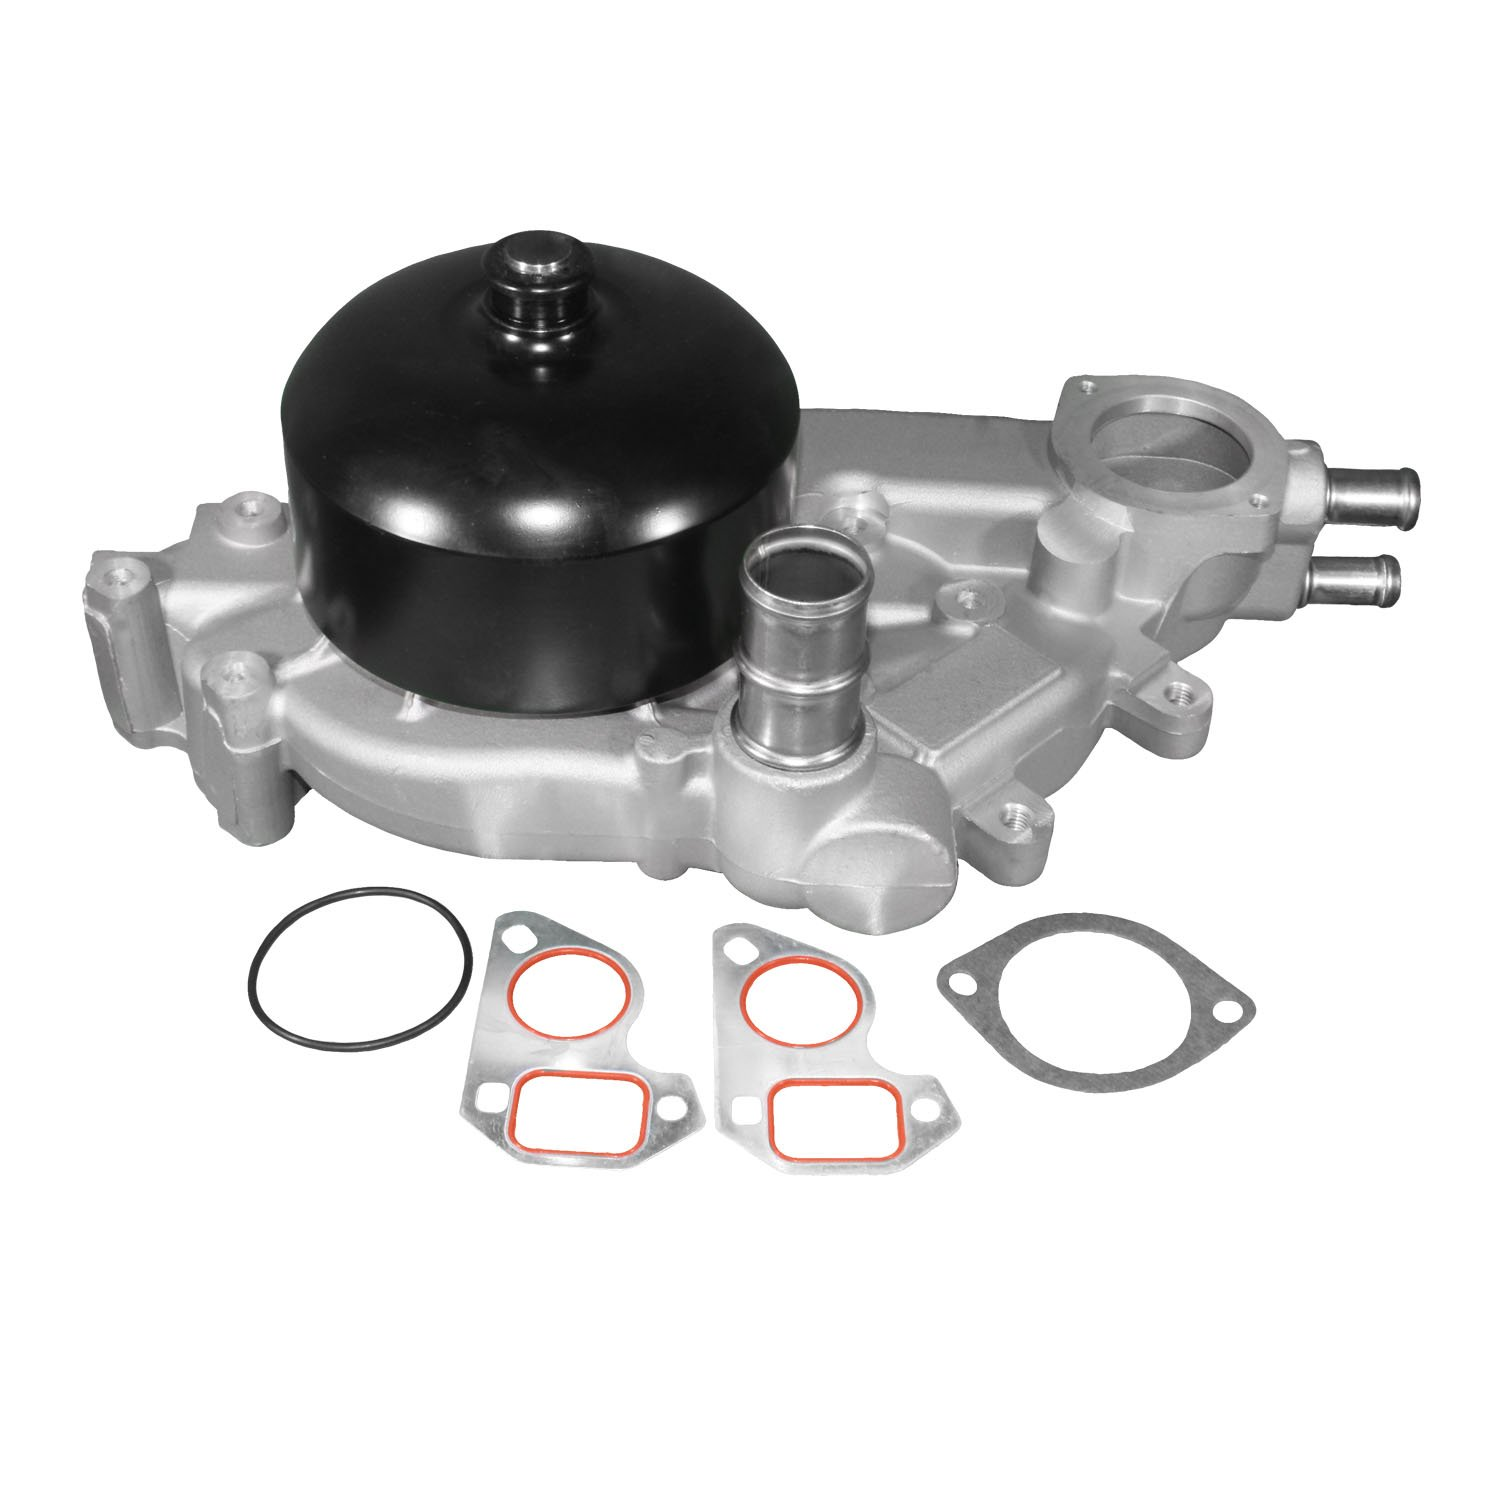 Acdelco 252 846 Professional Water Pump Kit Automotive 2001 Chevy Venture 3 1l Engine Pully Diagram